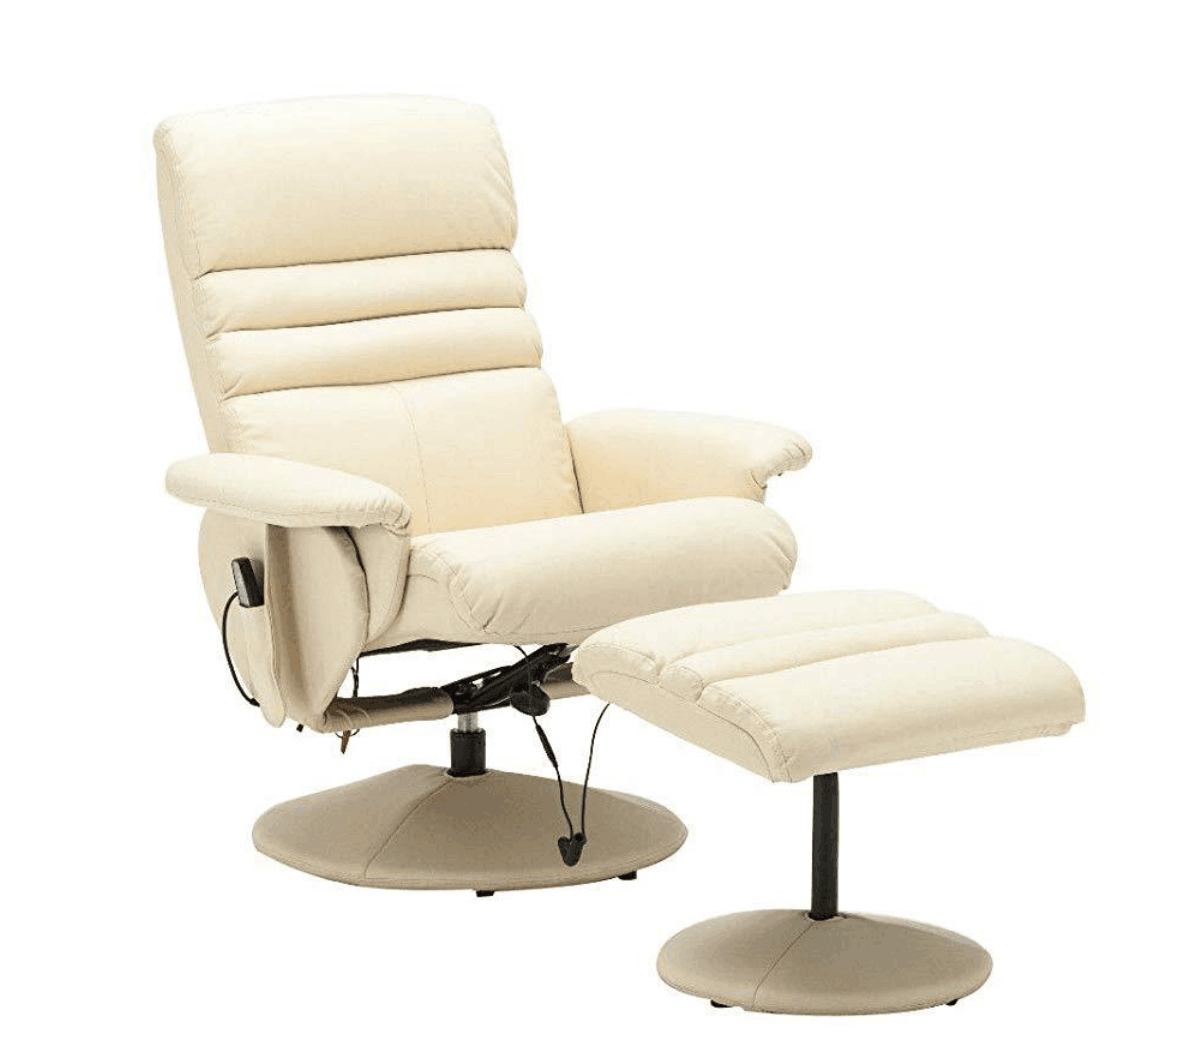 Magnificent Mcombo Electric Faux Leather Recliner Chair And Ottoman Swivel Gaming Massage Chair With Wrapped Base Remote Control For Video Game Office Home Pdpeps Interior Chair Design Pdpepsorg